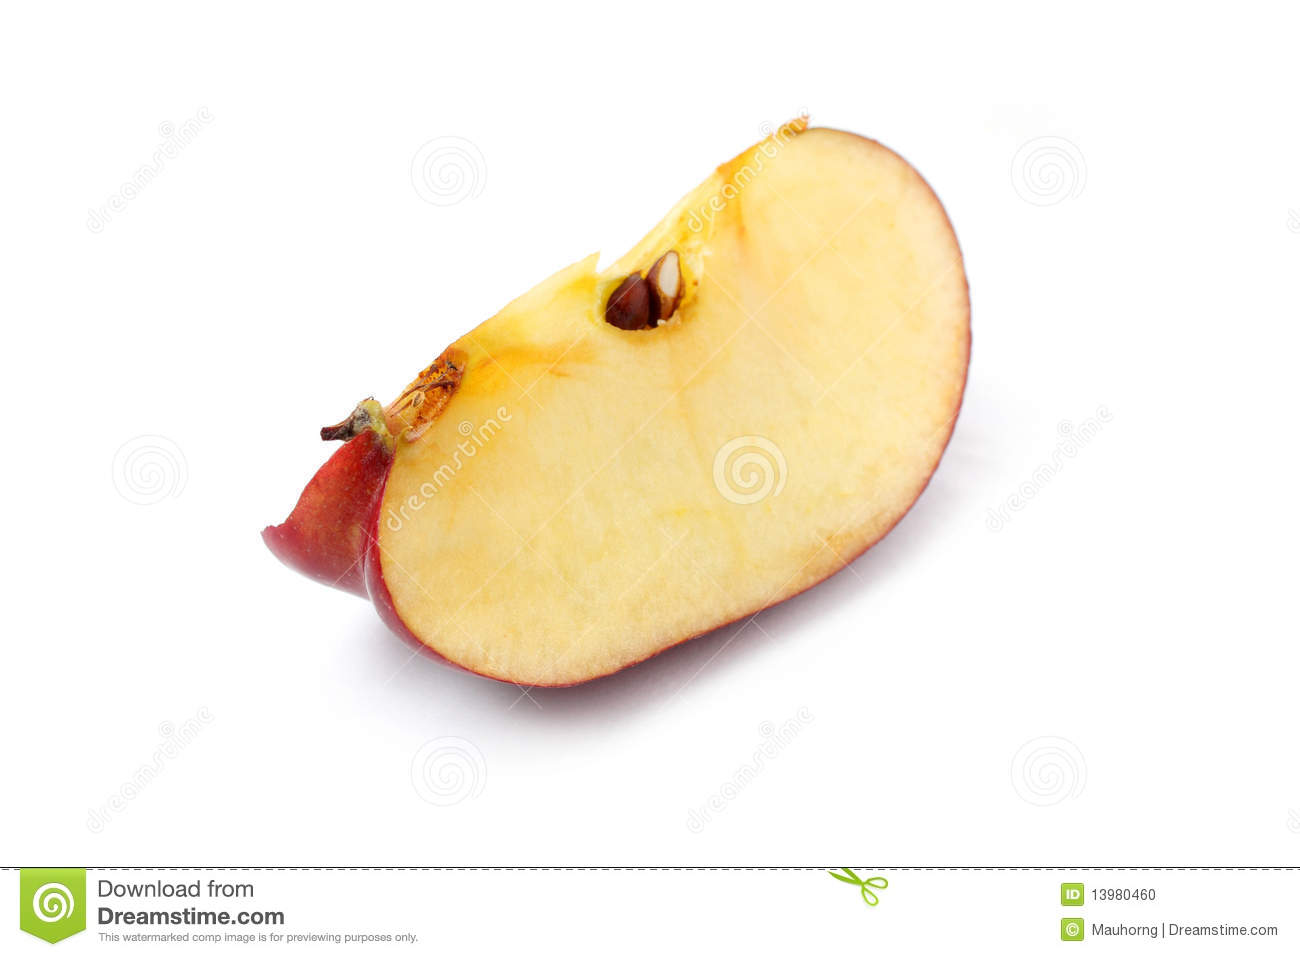 red apple slice. royalty-free stock photo. download red apple slice l